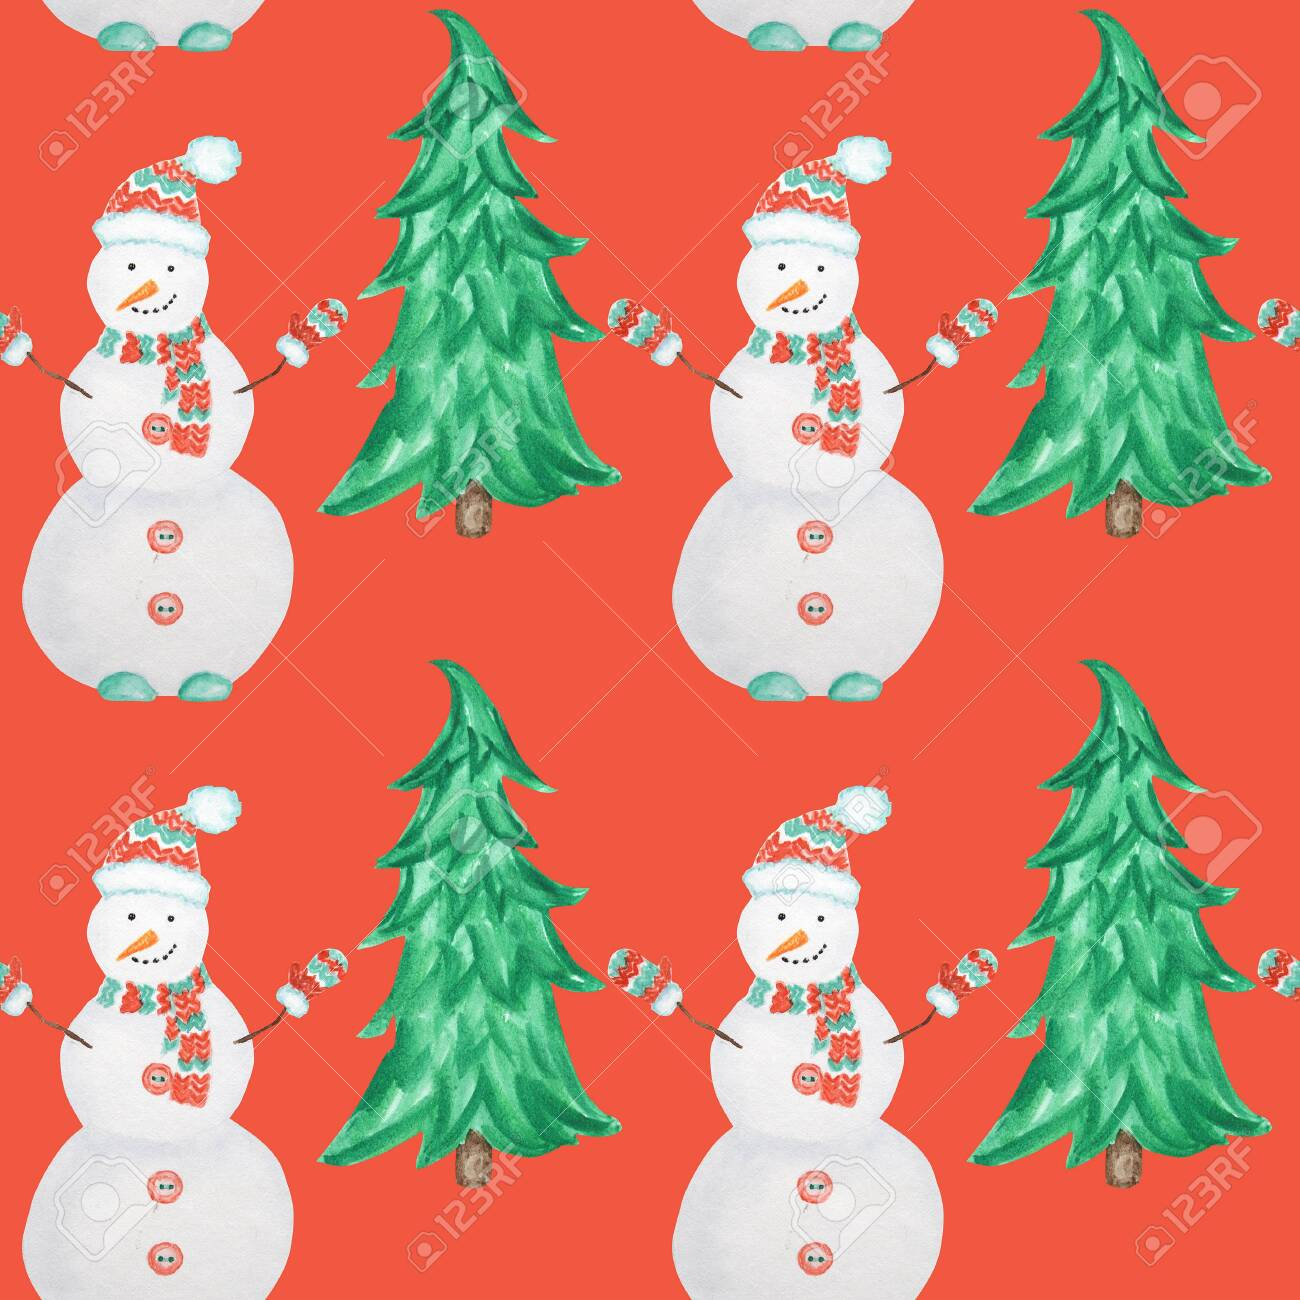 Seamless Pattern New Year Christmas Tree And Snowman Isolated Stock Photo Picture And Royalty Free Image Image 129629121